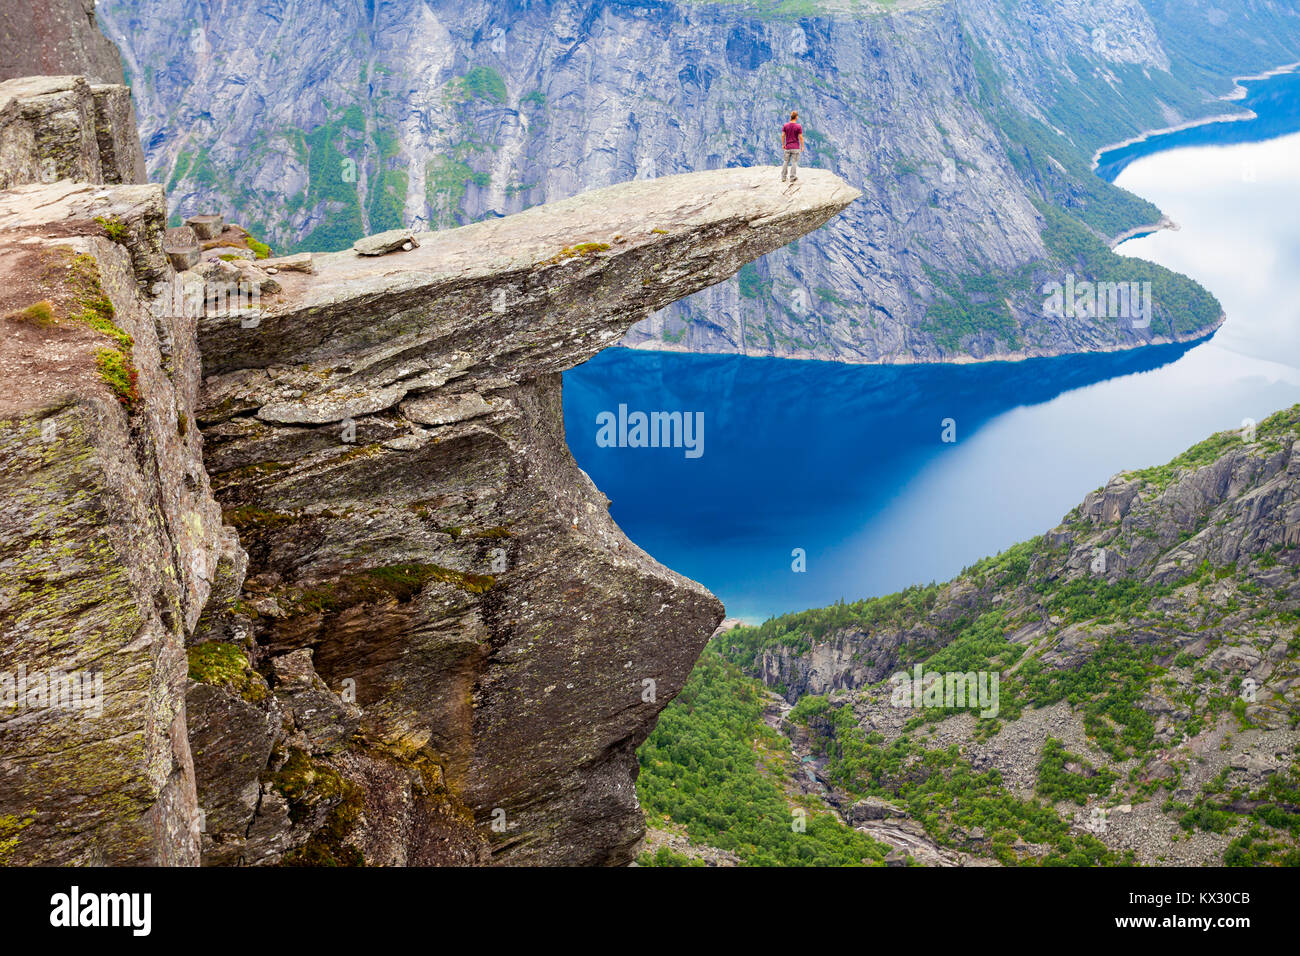 Trolltunga or Troll Tongue is a rock formation  at the Hardangerfjord near Odda town in Hordaland, Norway - Stock Image